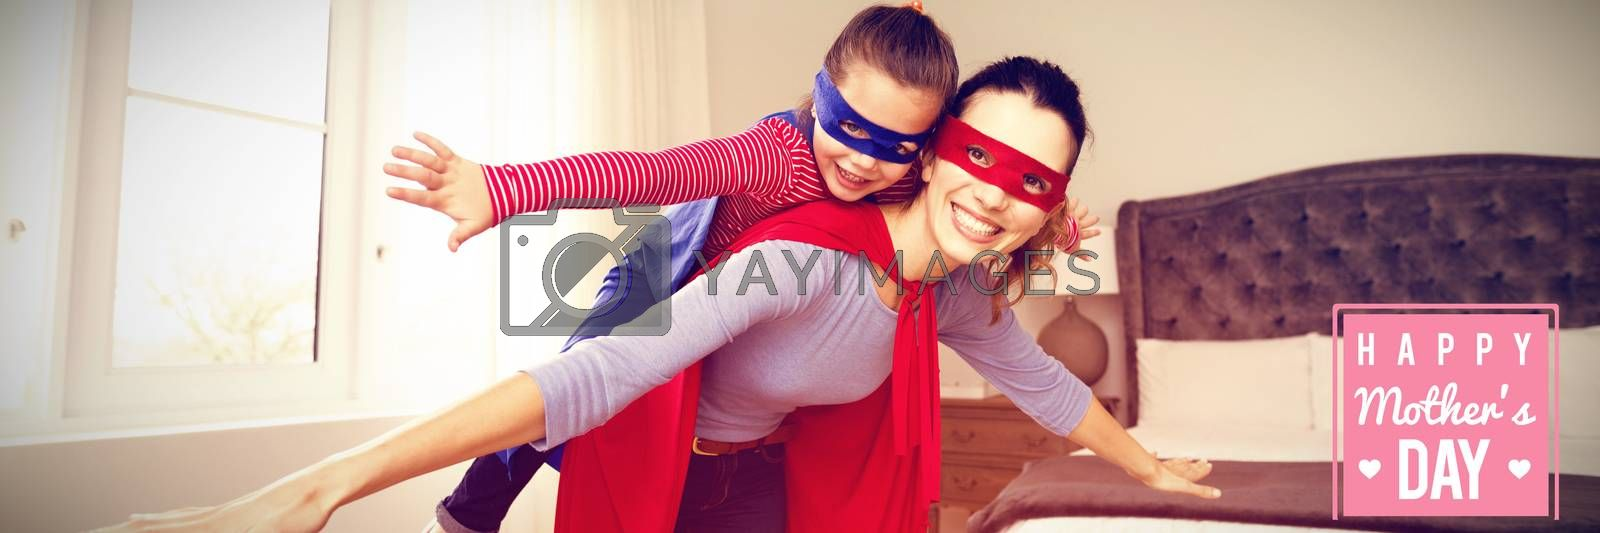 mothers day greeting against mother and daughter playing superwoman